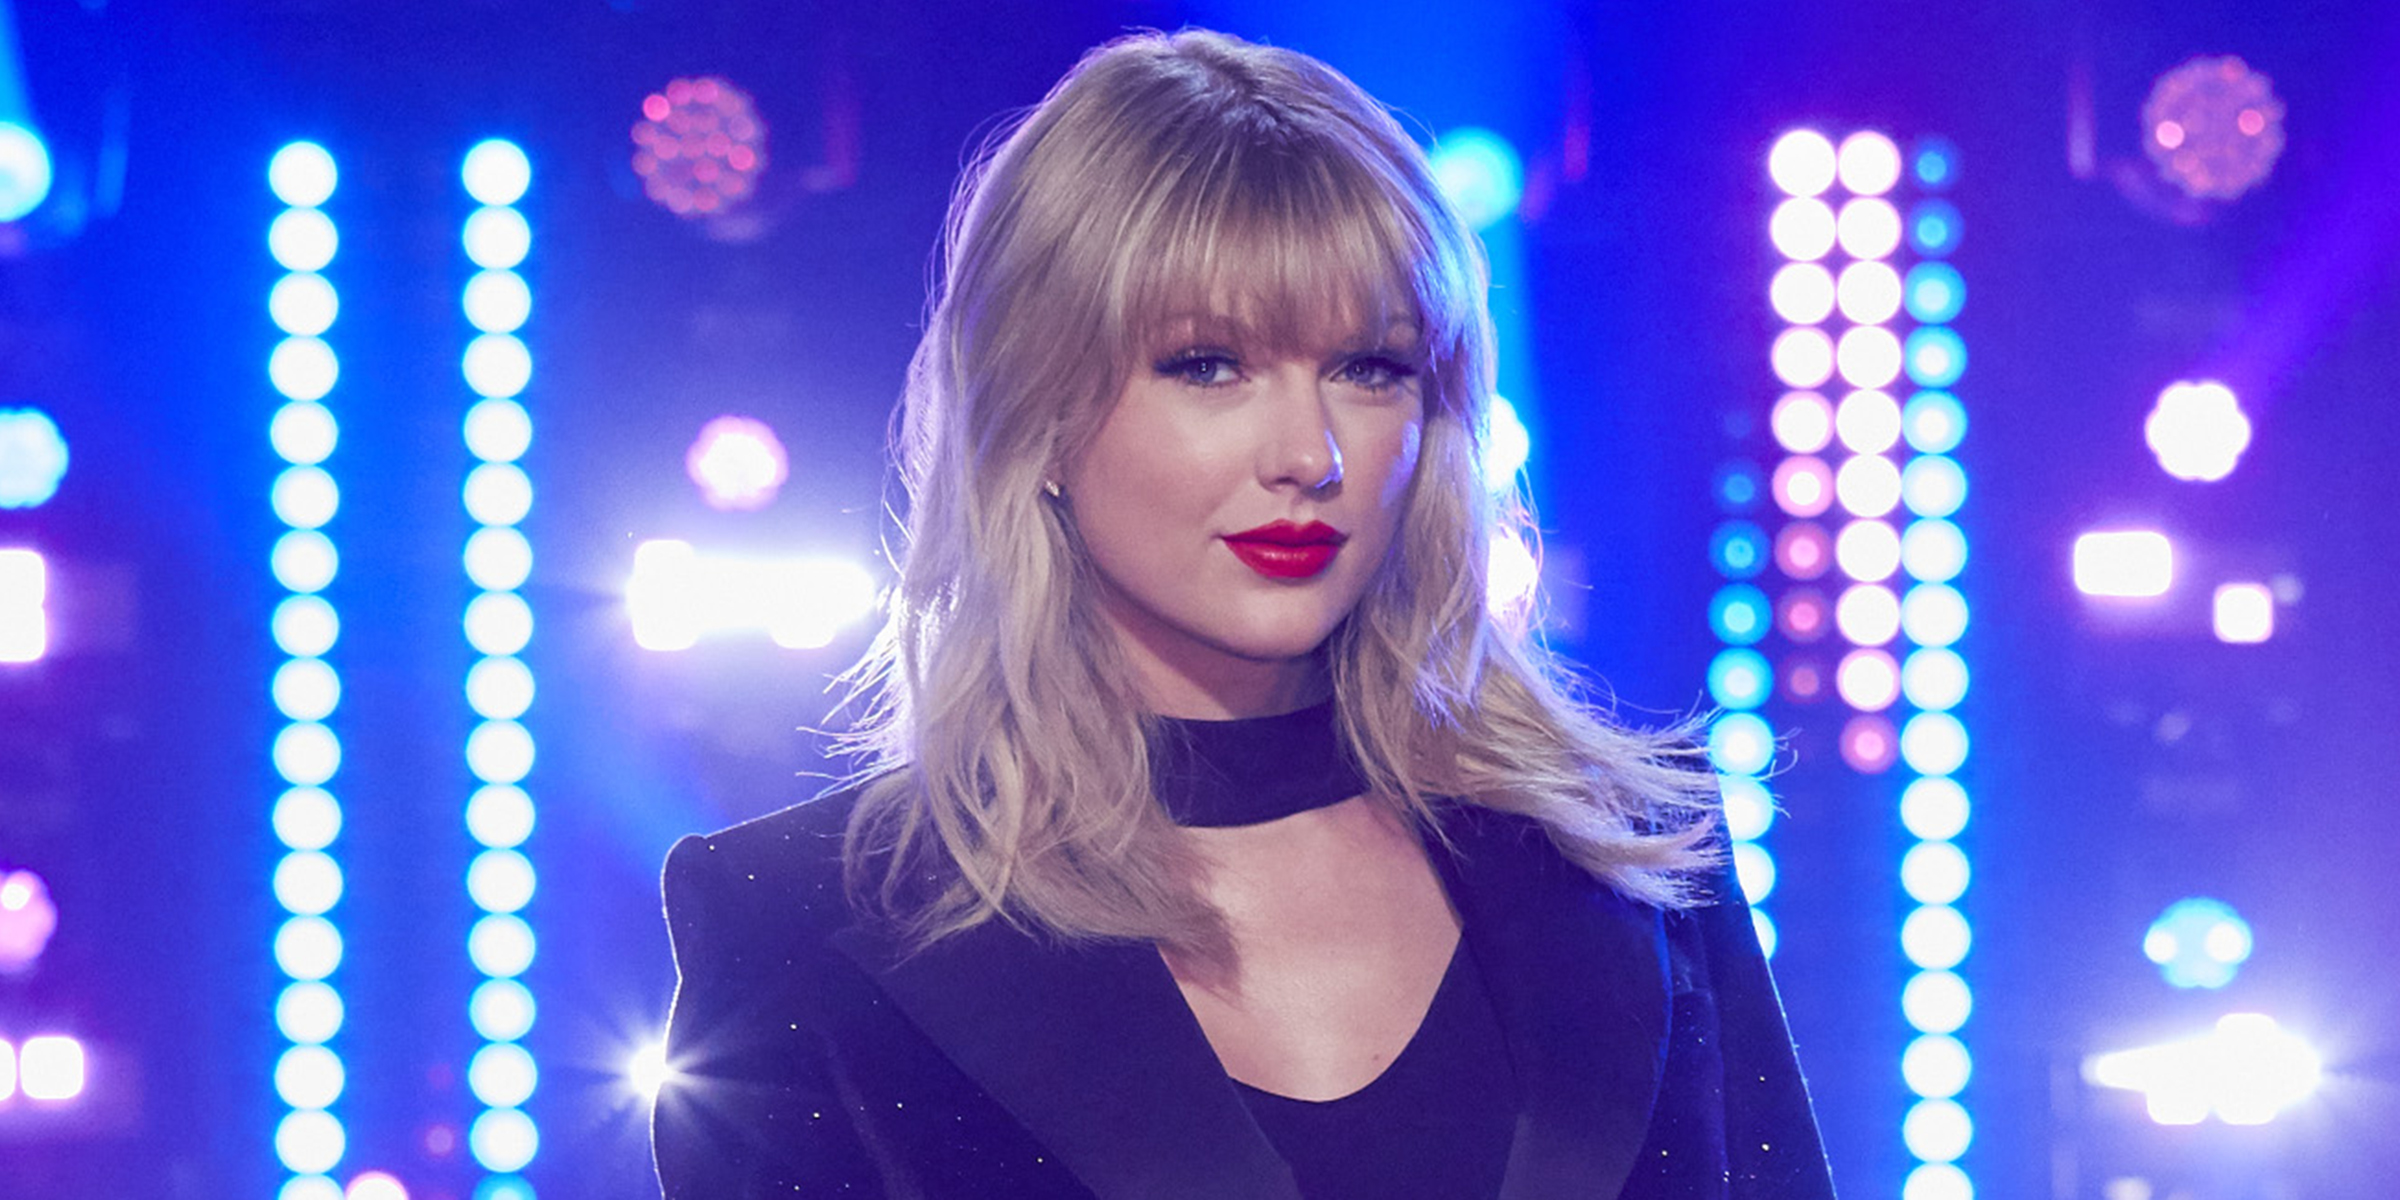 Taylor Swift Joins The Voice See Blake Shelton John Legend React In Funny Video